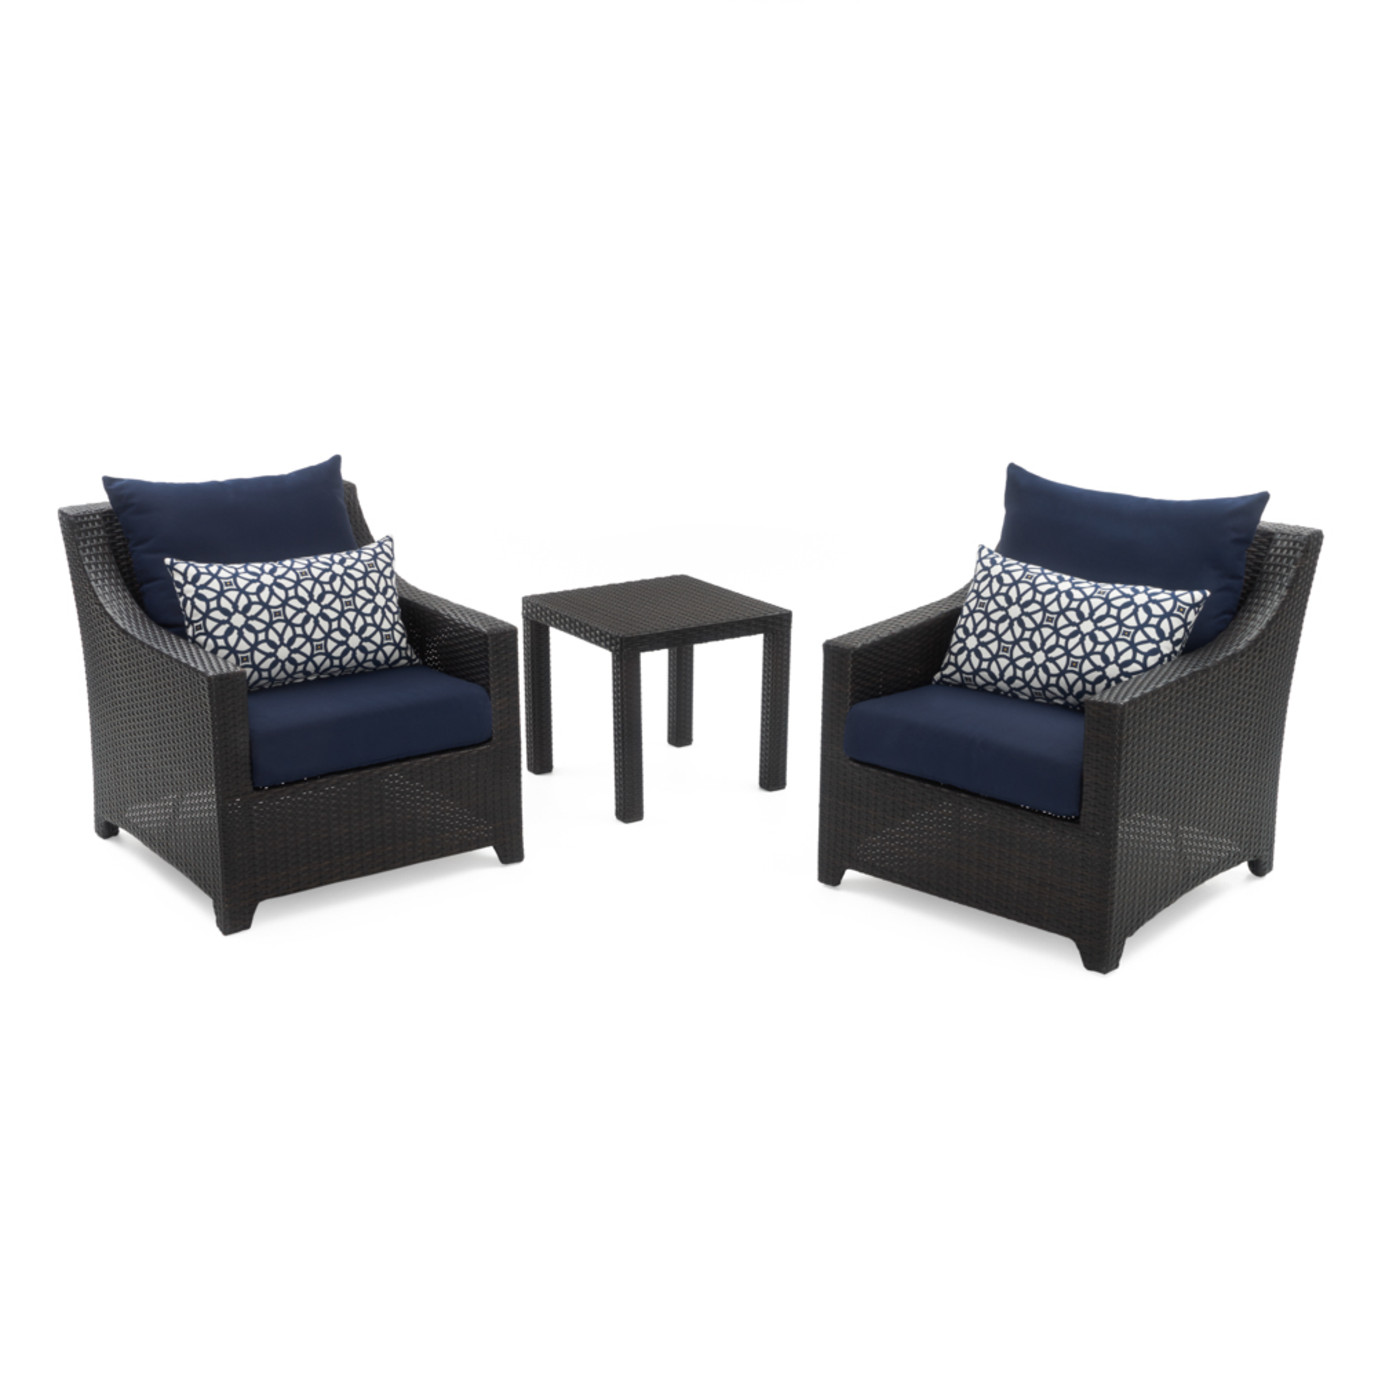 Deco Club Chairs And Side Table Navy Blue Rst Brands